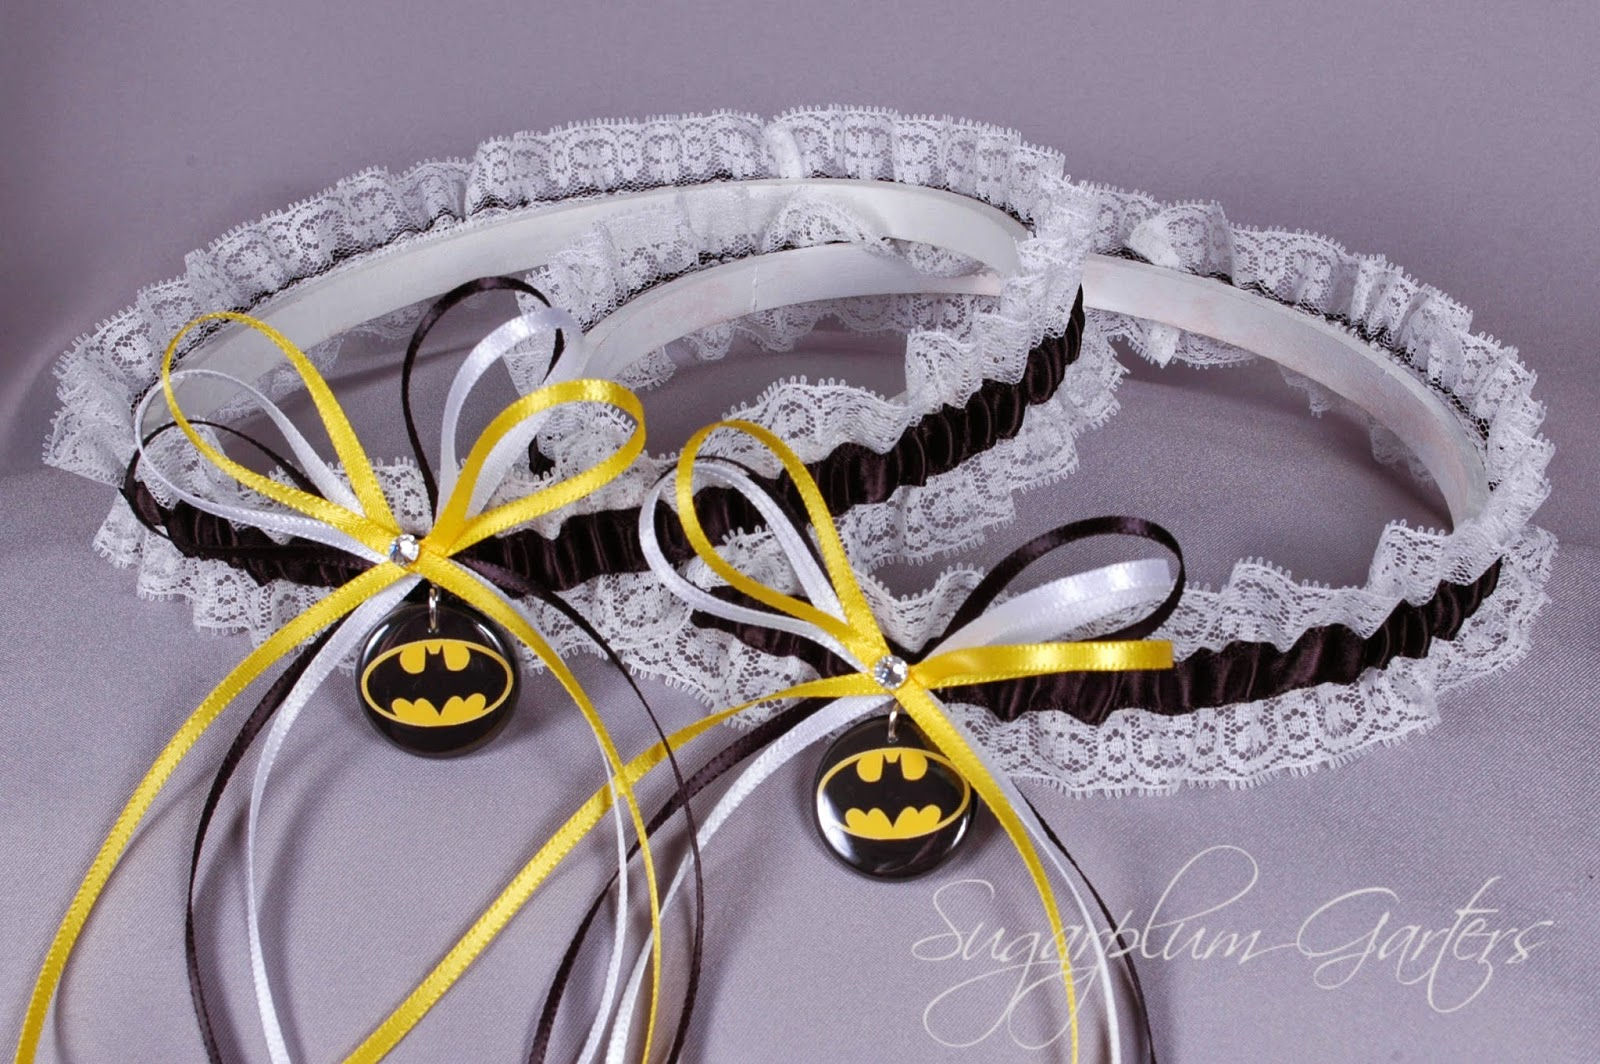 Batman Lace Wedding Garter Set by Sugarplum Garters